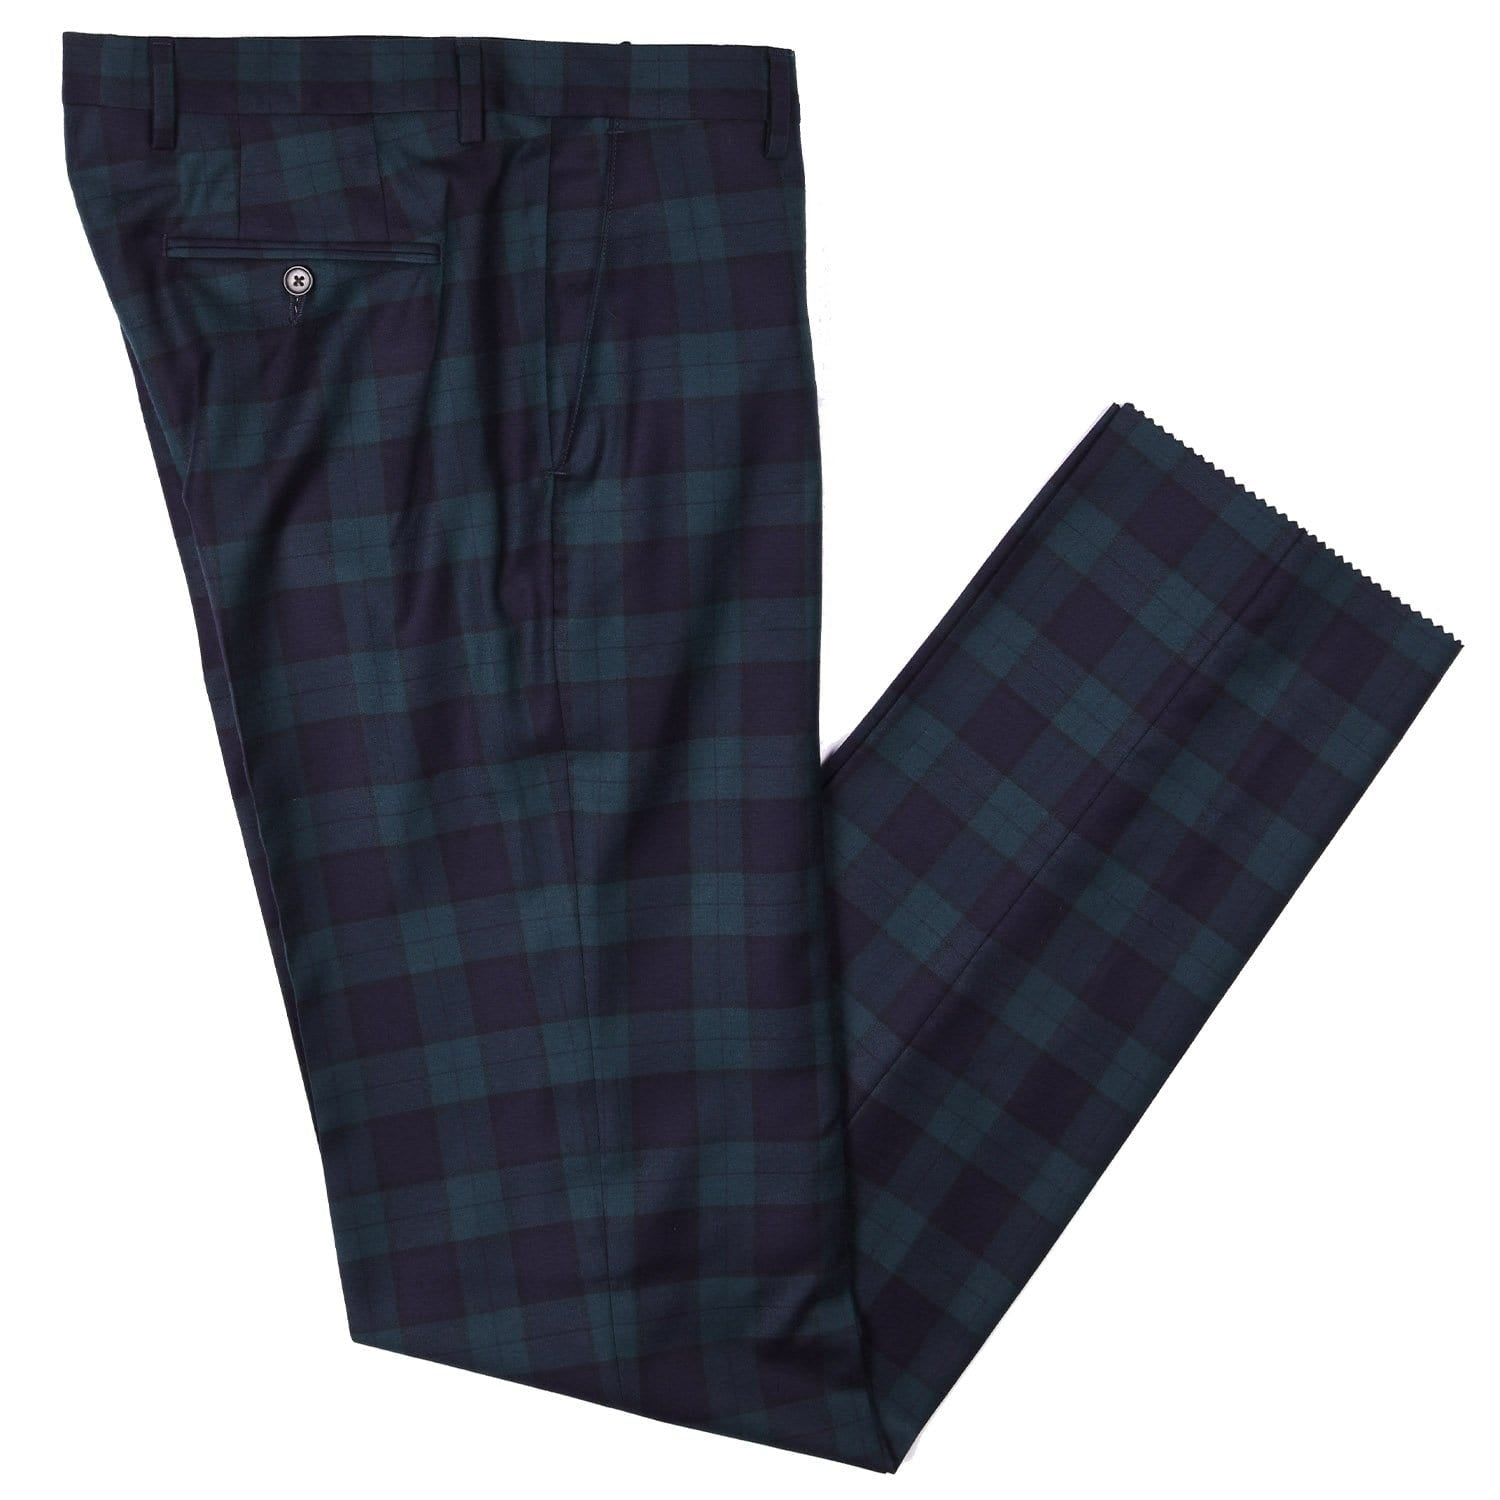 Blackwatch Pant - Haspel Clothing